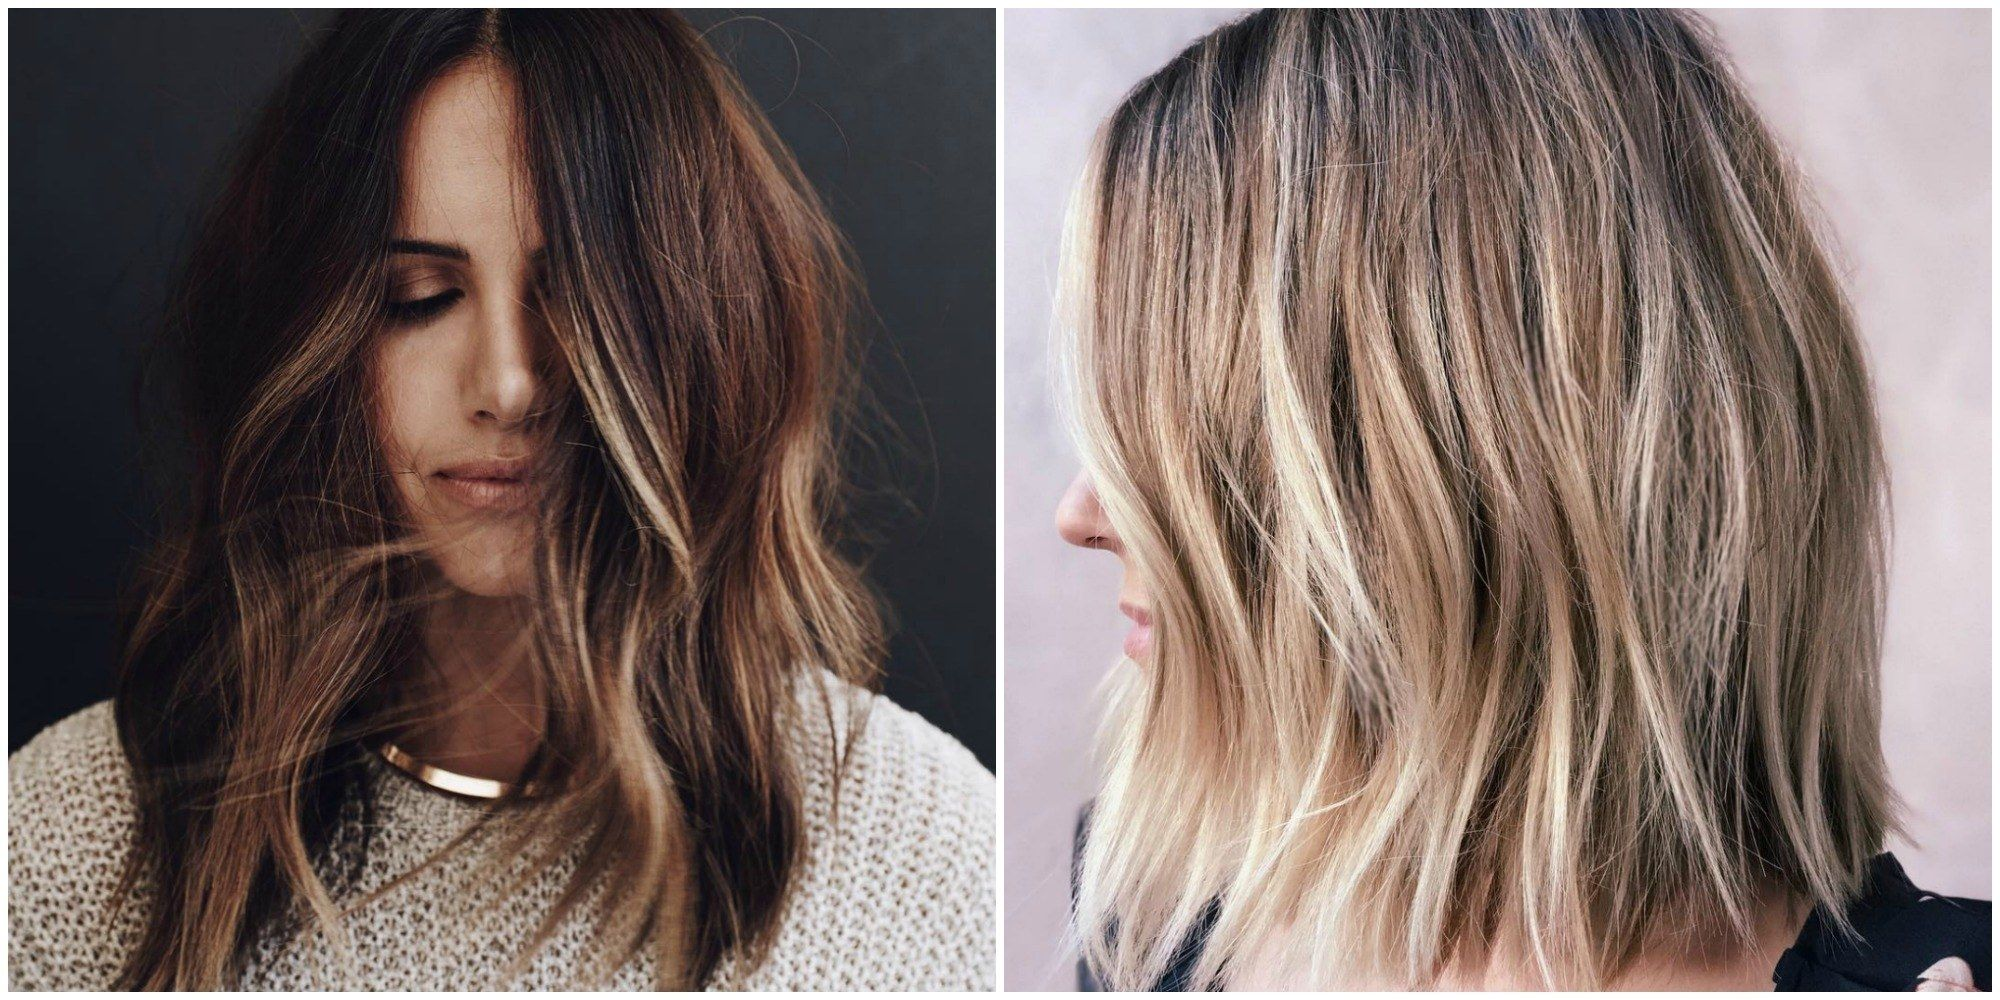 Yes You Can Successfully Highlight Your Own Hair Hair Color Highlights Hair Highlights Diy Hair Color